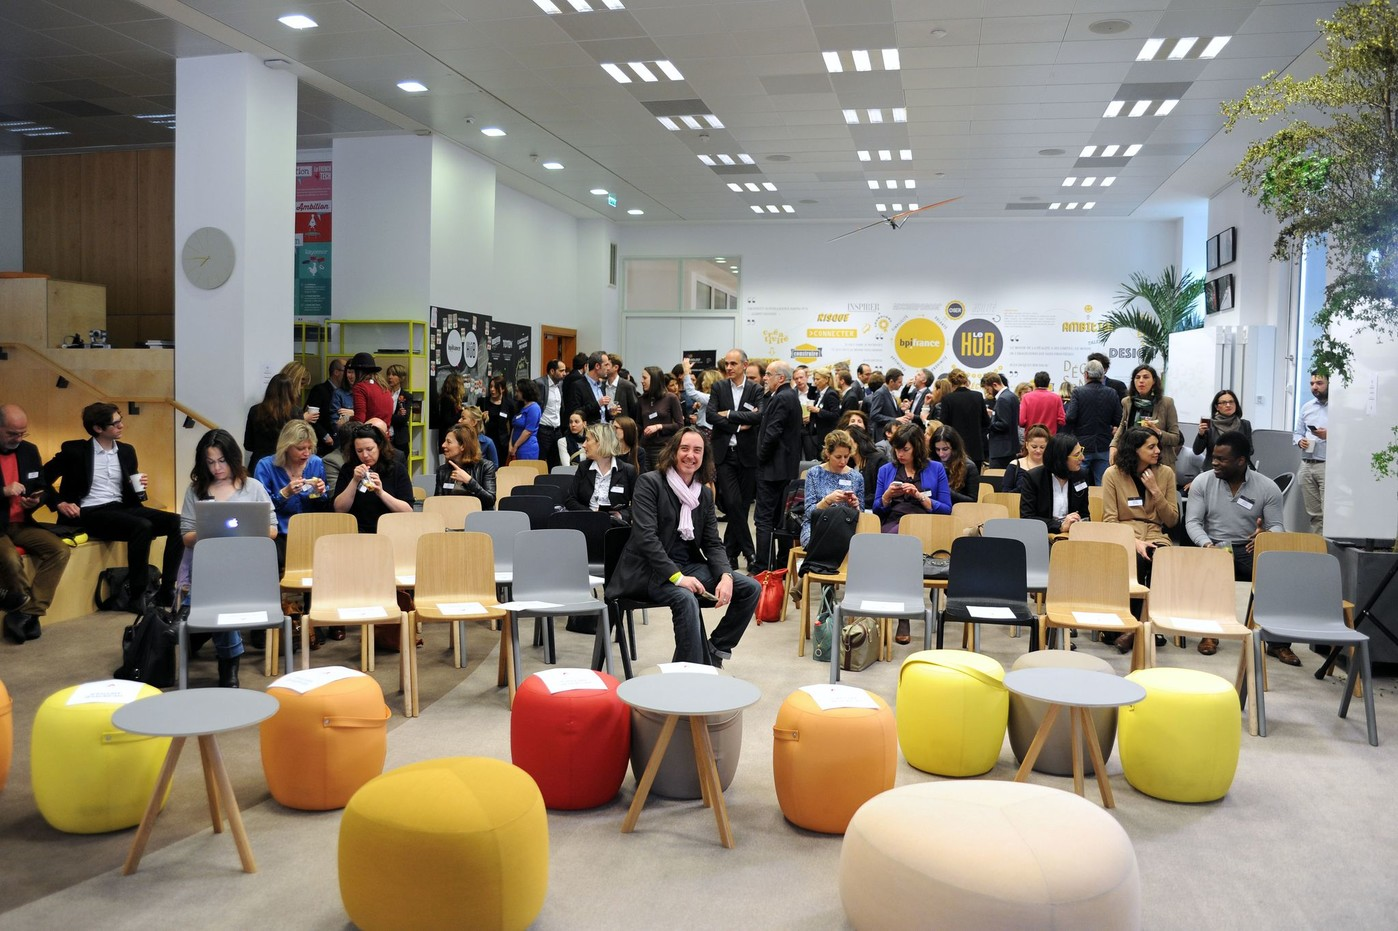 Salon Innovation Paris Paris Inaugure Son Grand Salon Dédié à Linnovation La Croix